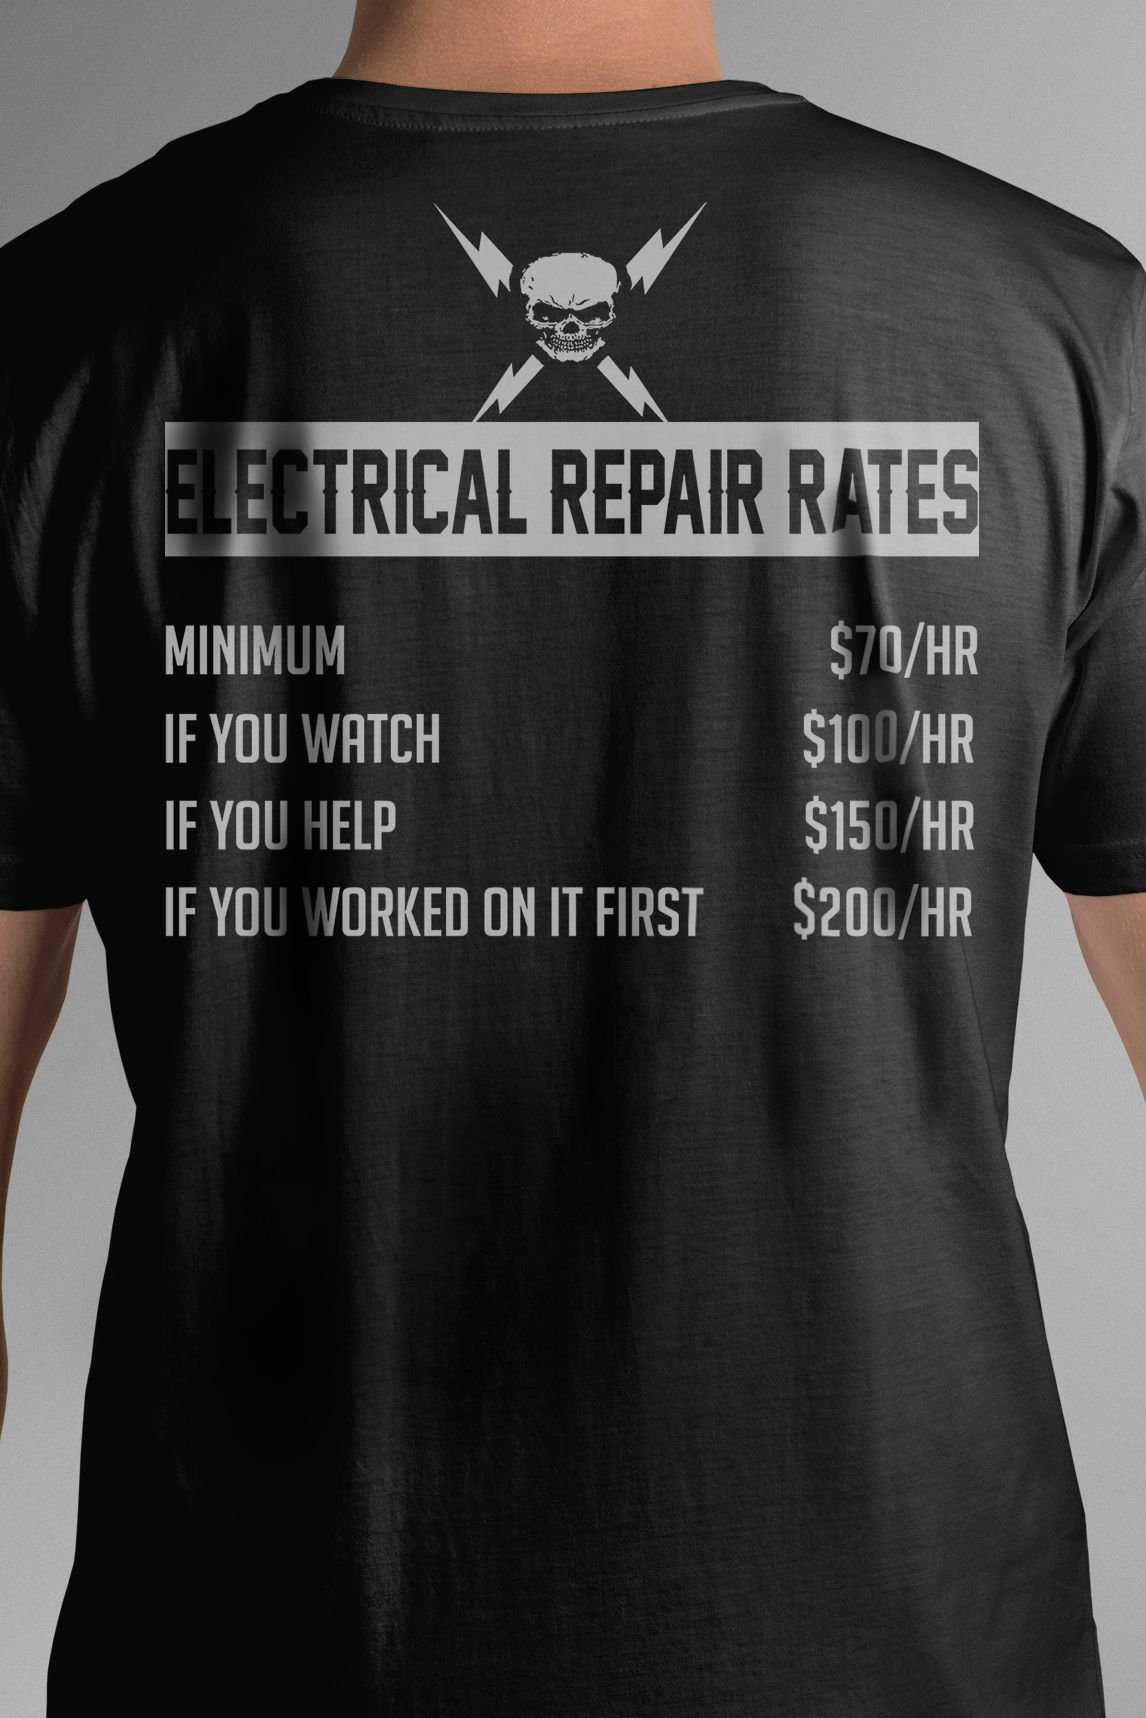 b649552a Electrician Tee Electrical Repair Rates - Electrician Gift - Design  available on Tee Shirt Hoodie Tank Mug Sticker Long Sleeve .